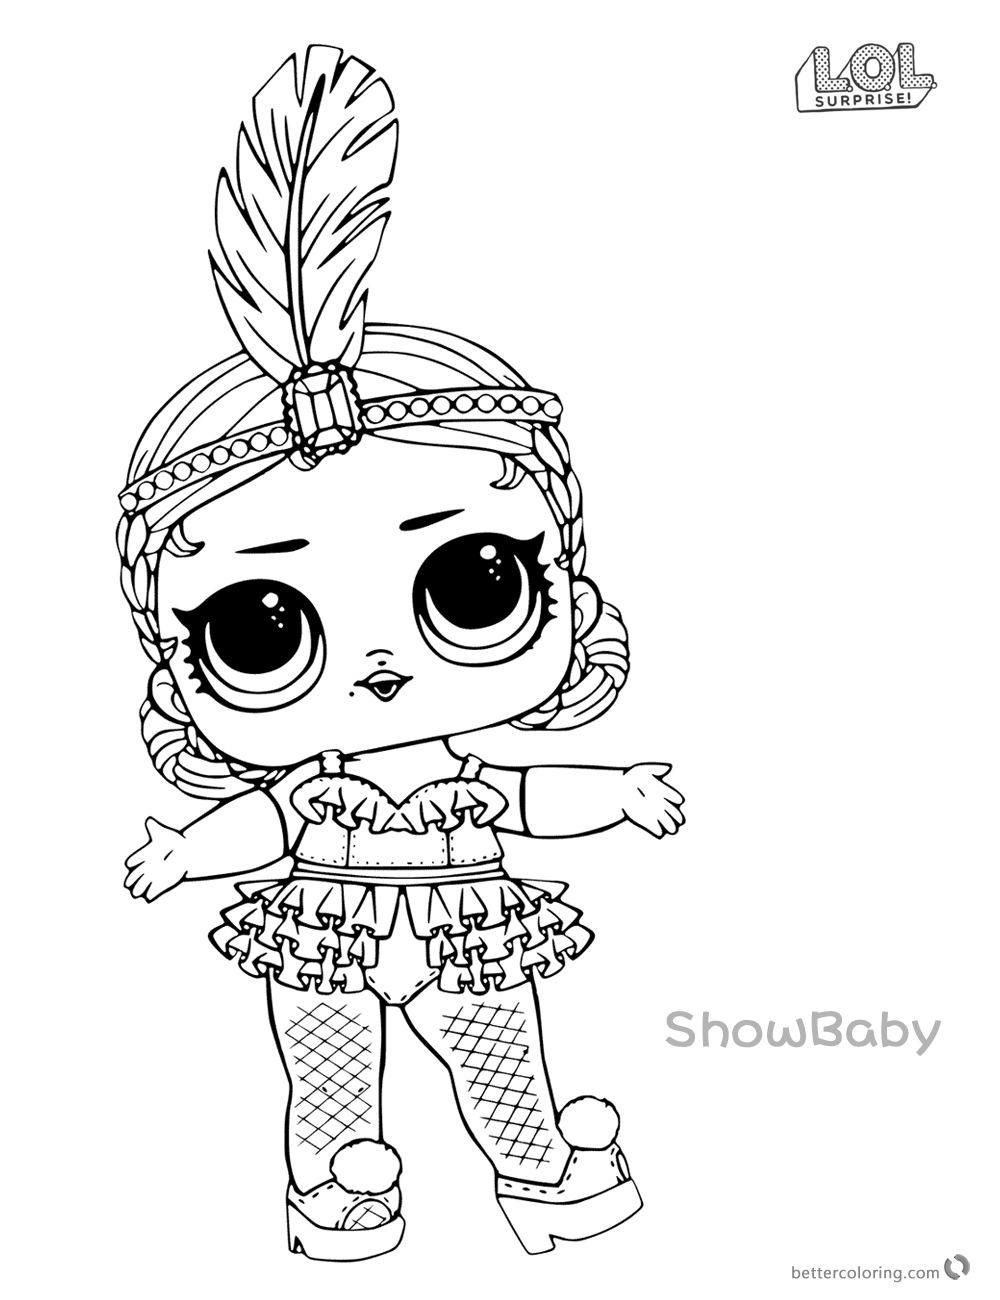 baylee jae coloring sheets lol surprise doll coloring pages showbaby free printable